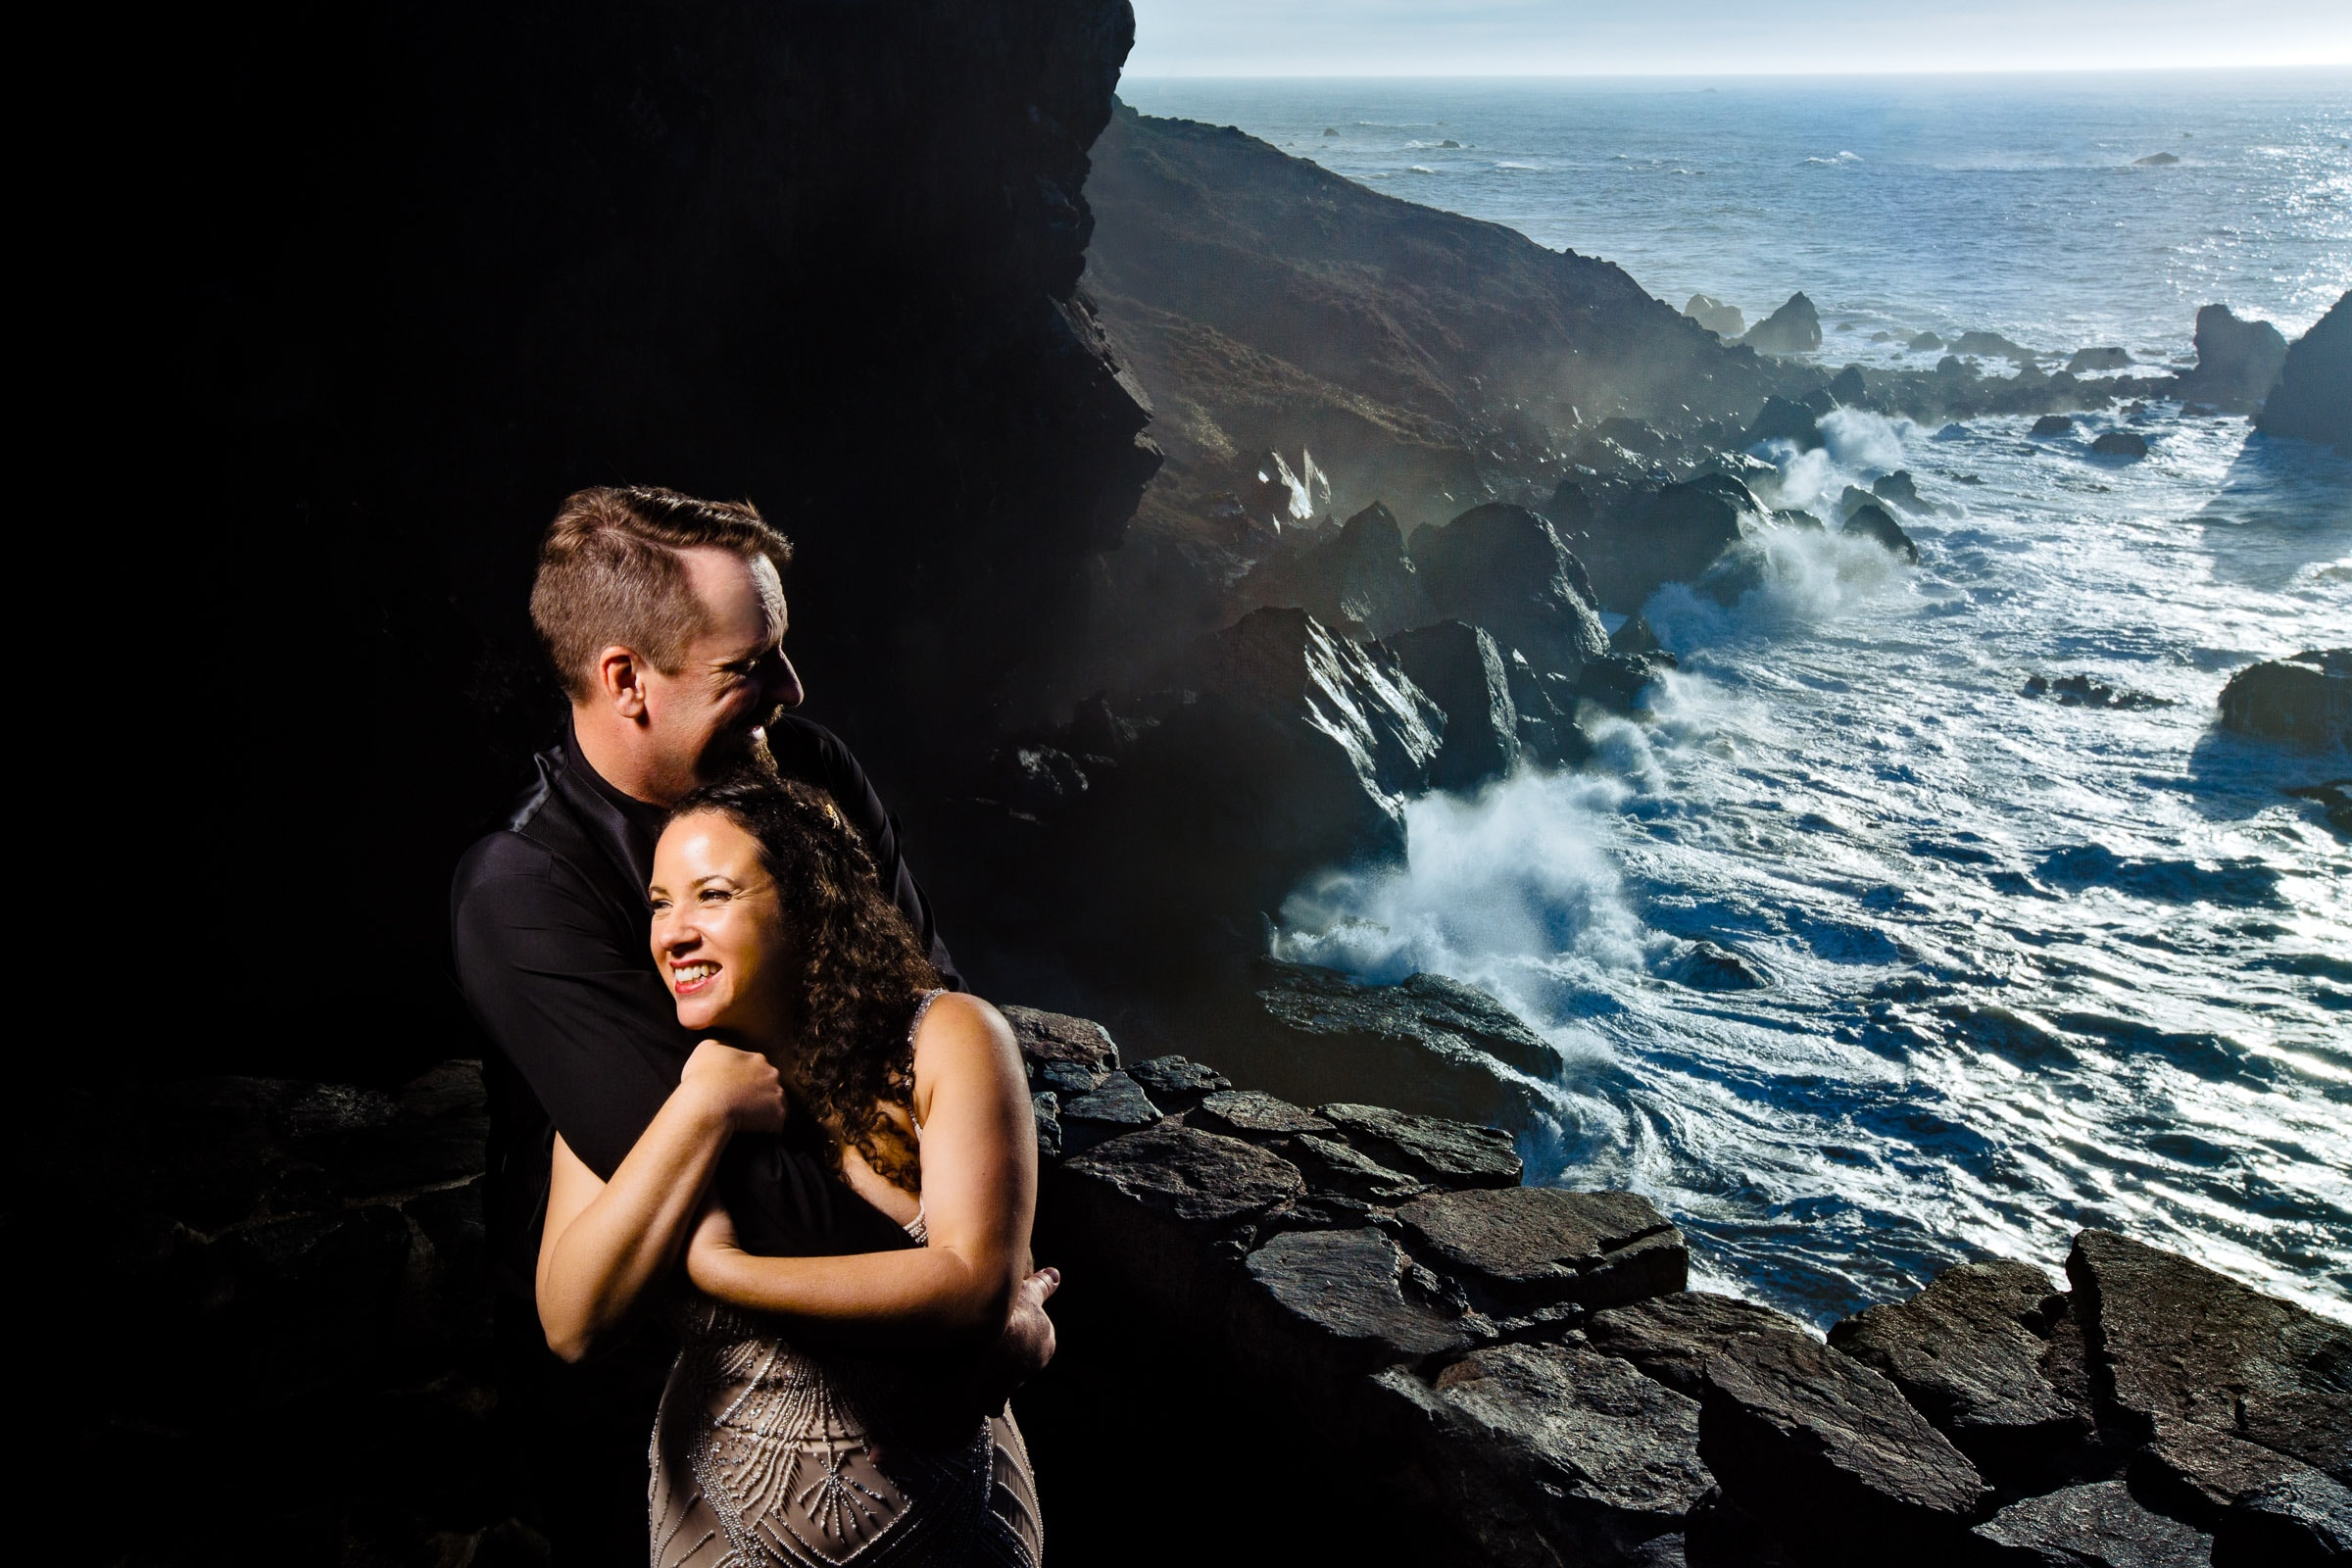 Gorgeous bride and groom portrait on Wedding Rock near Patricks Point in Trinidad California